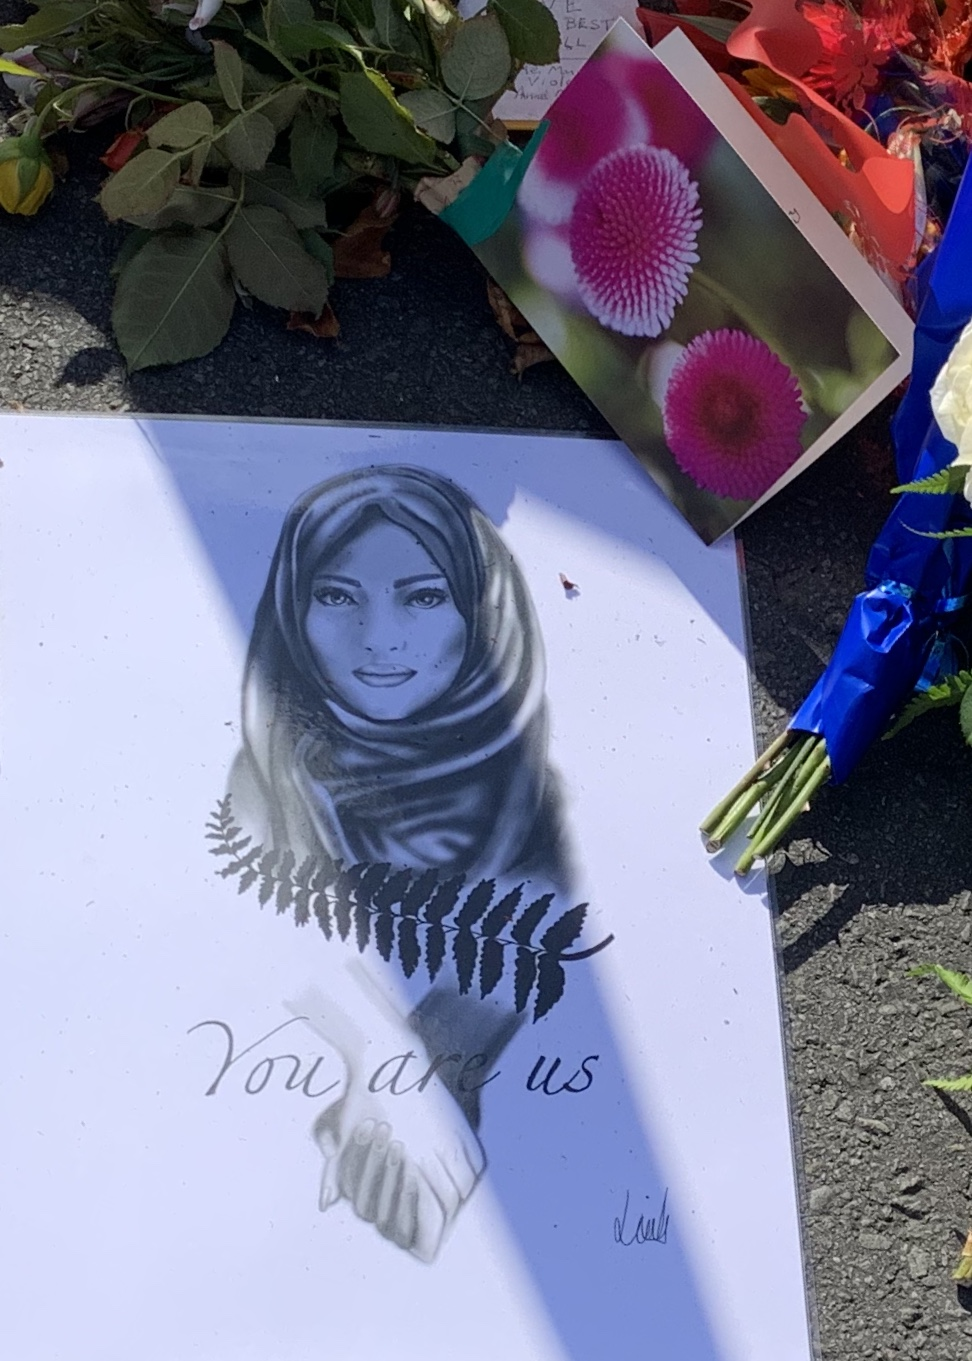 Poster showing muslim woman, New Zealand's silver fern, and the text 'you are us'